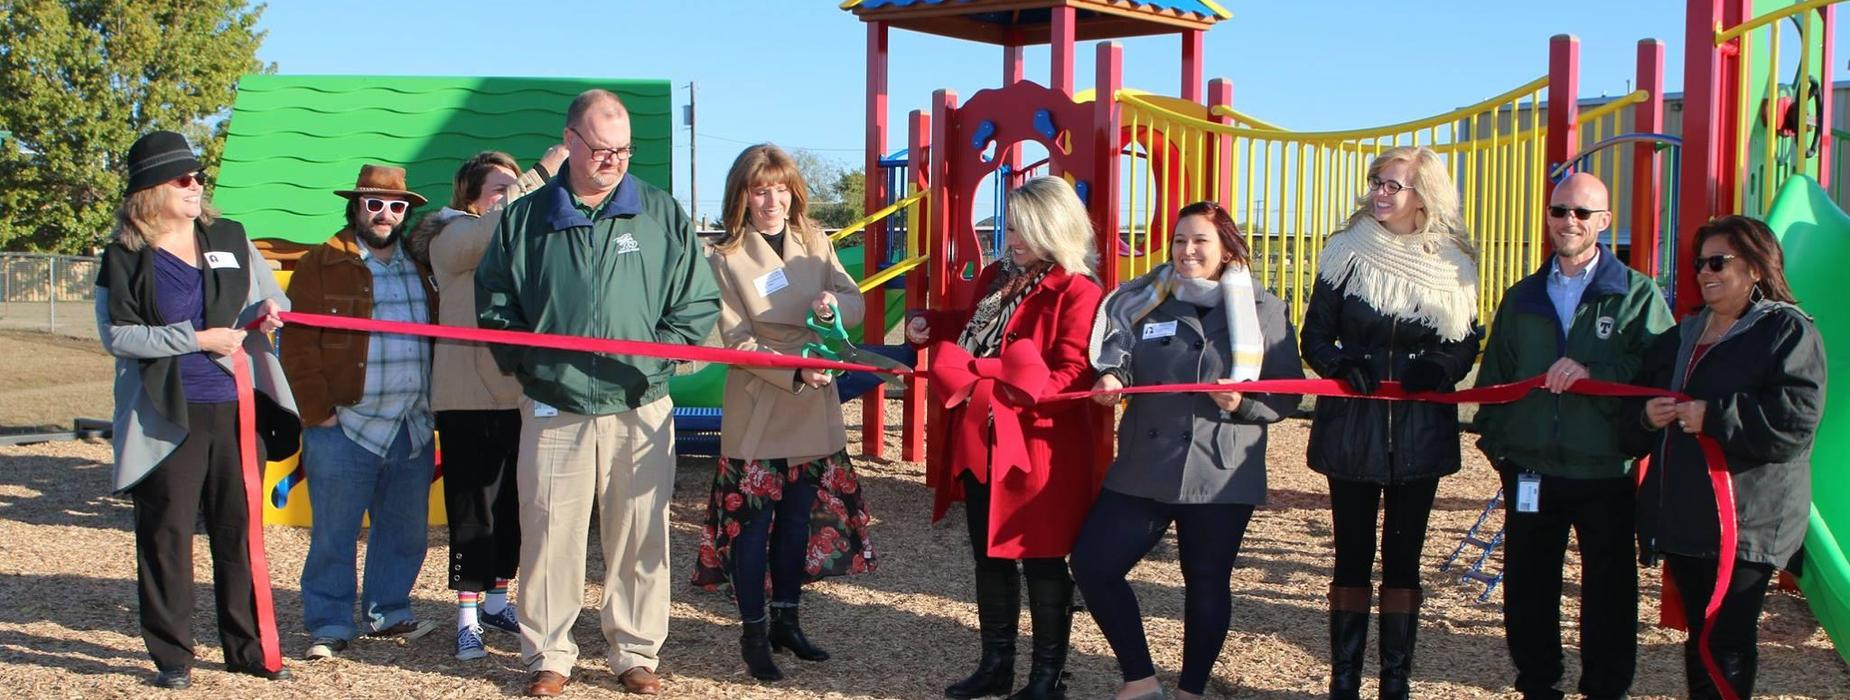 ribbon cutting for new playground